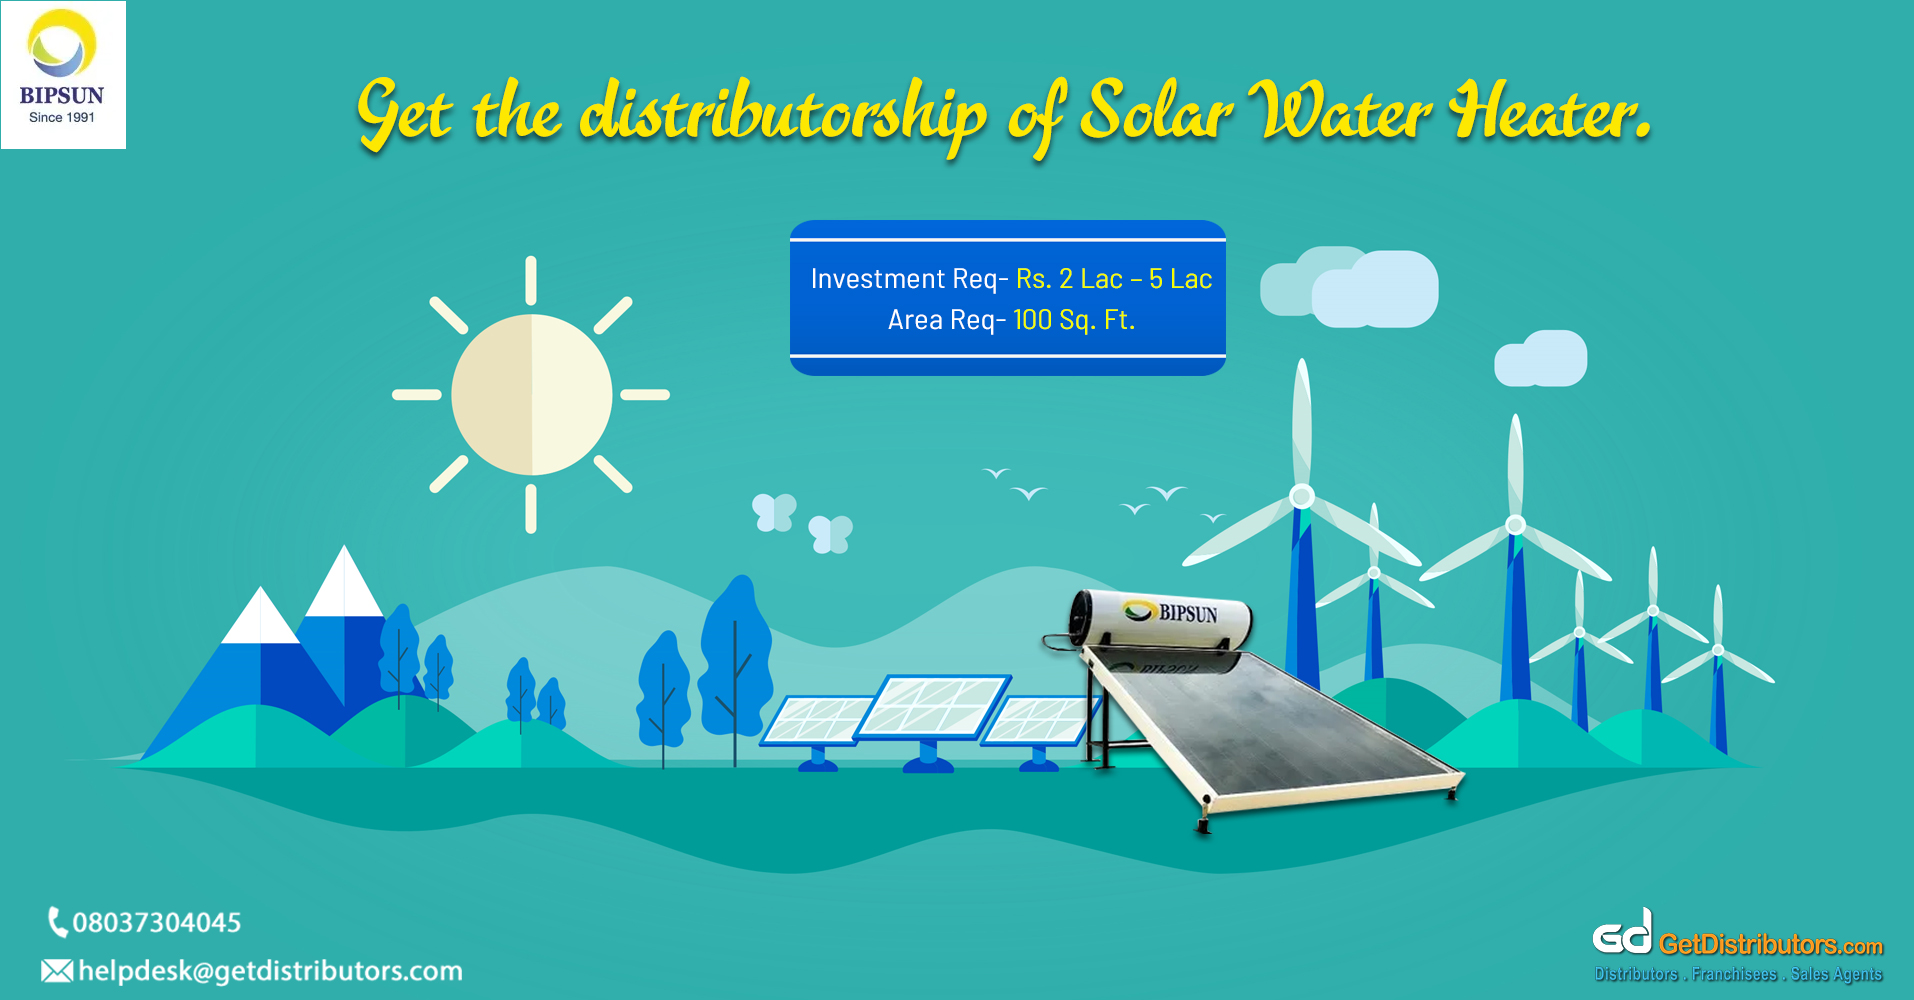 Wide range of solar water heaters and renewable products